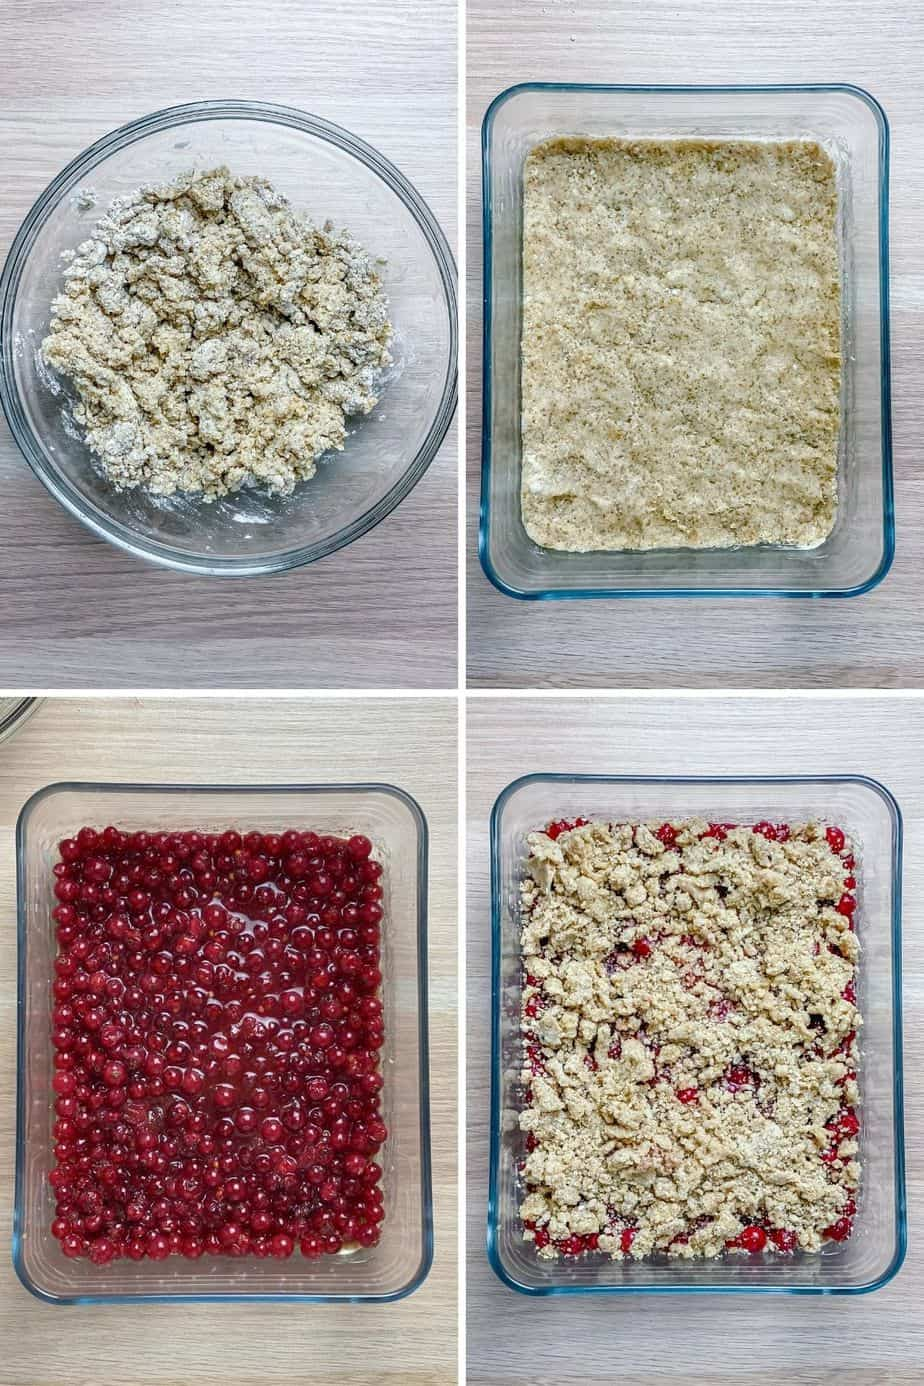 These Red Currant Crumble Bars are gluten free, super easy summer berry recipe that you can whip up in only few minutes. Serve them for dessert, breakfast or enjoy as a delicious snack during the day. - The Yummy Bowl